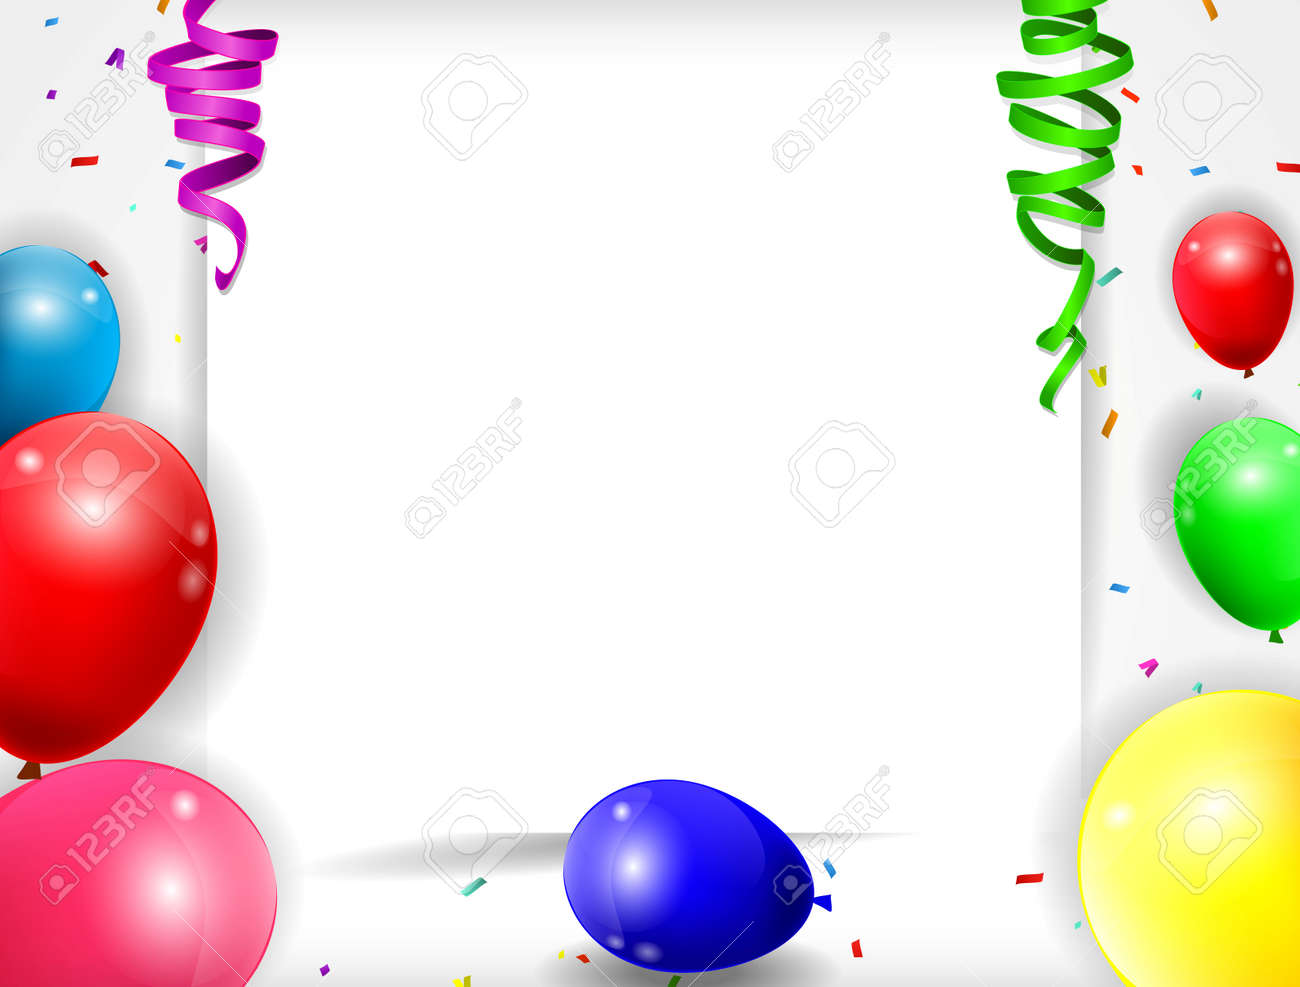 birthday background with colorful balloons of illustration - 41617917